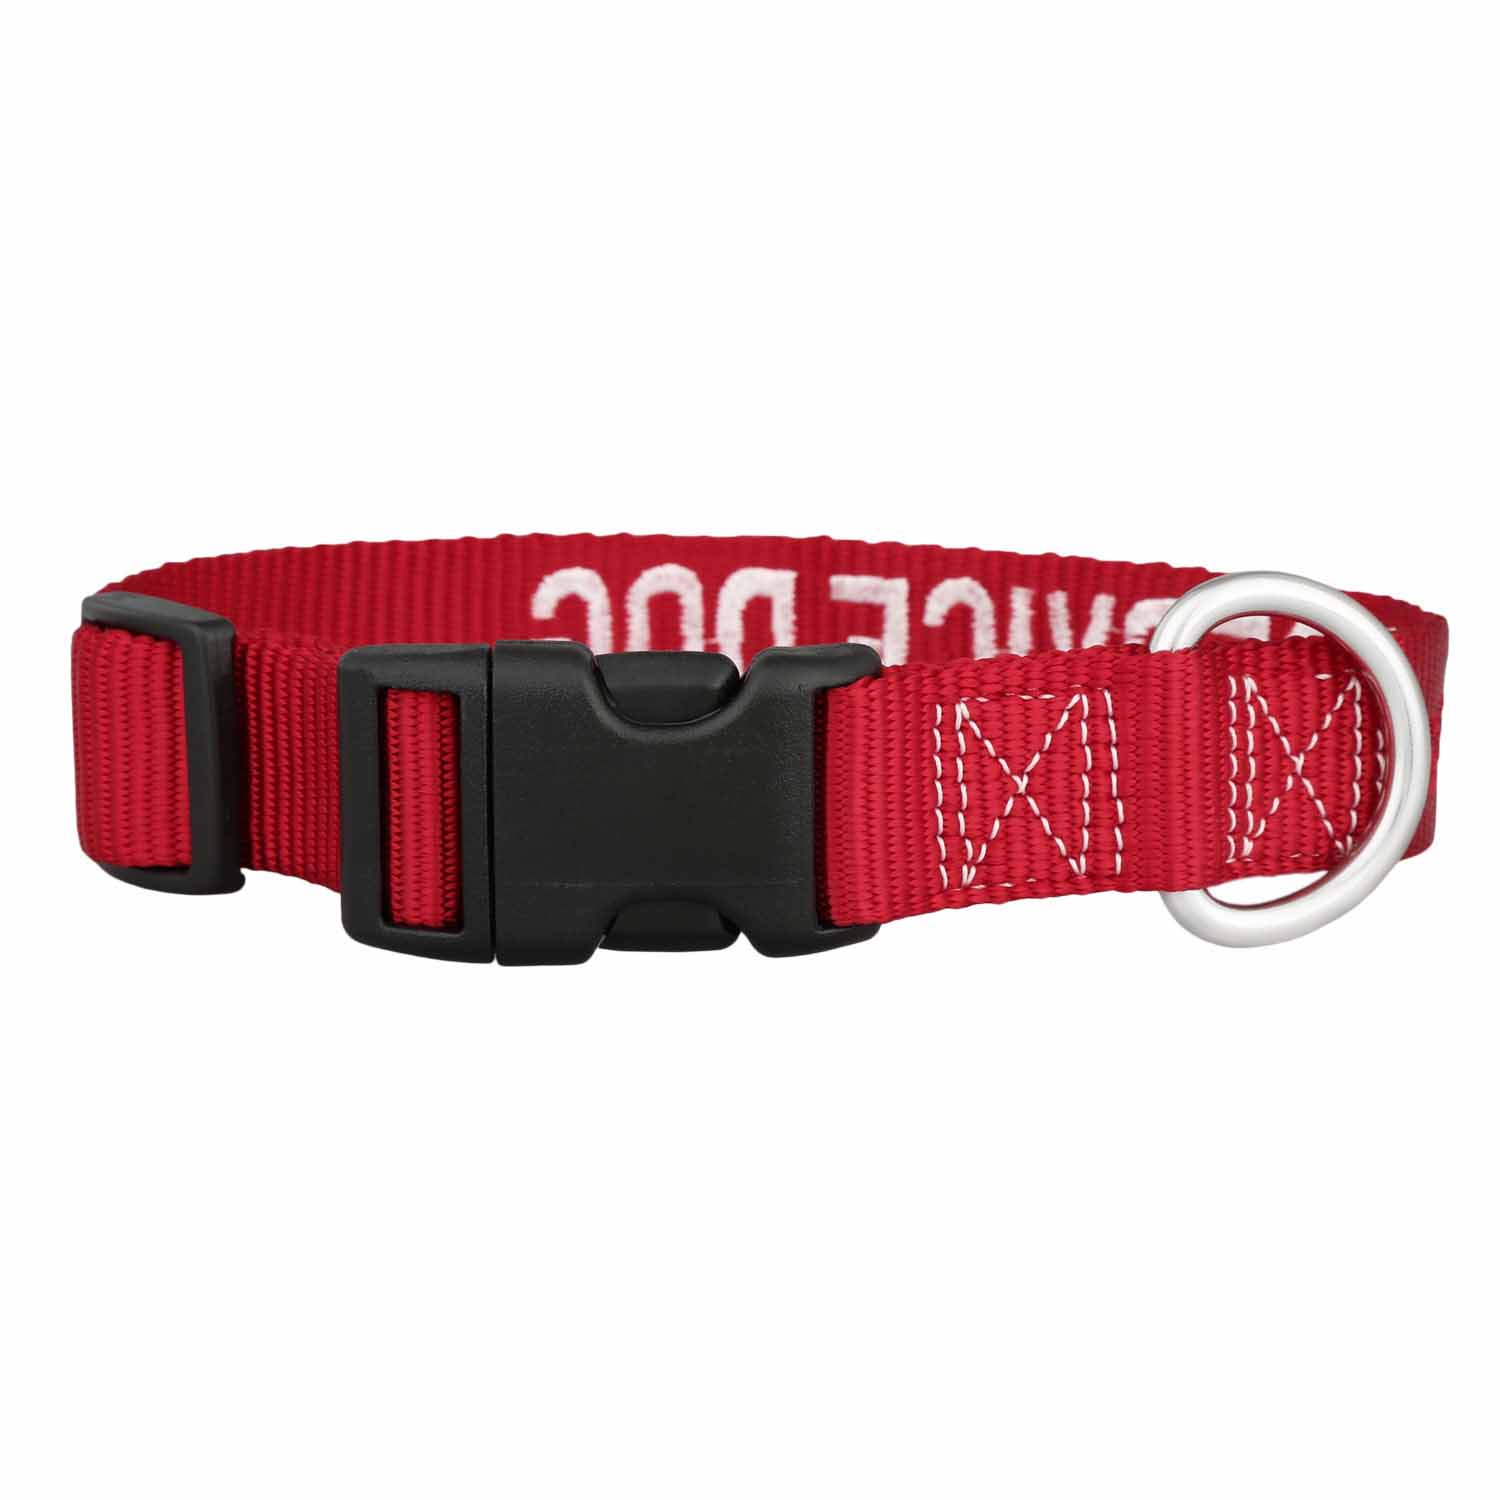 Embroidered Service Dog Collar Buckle View